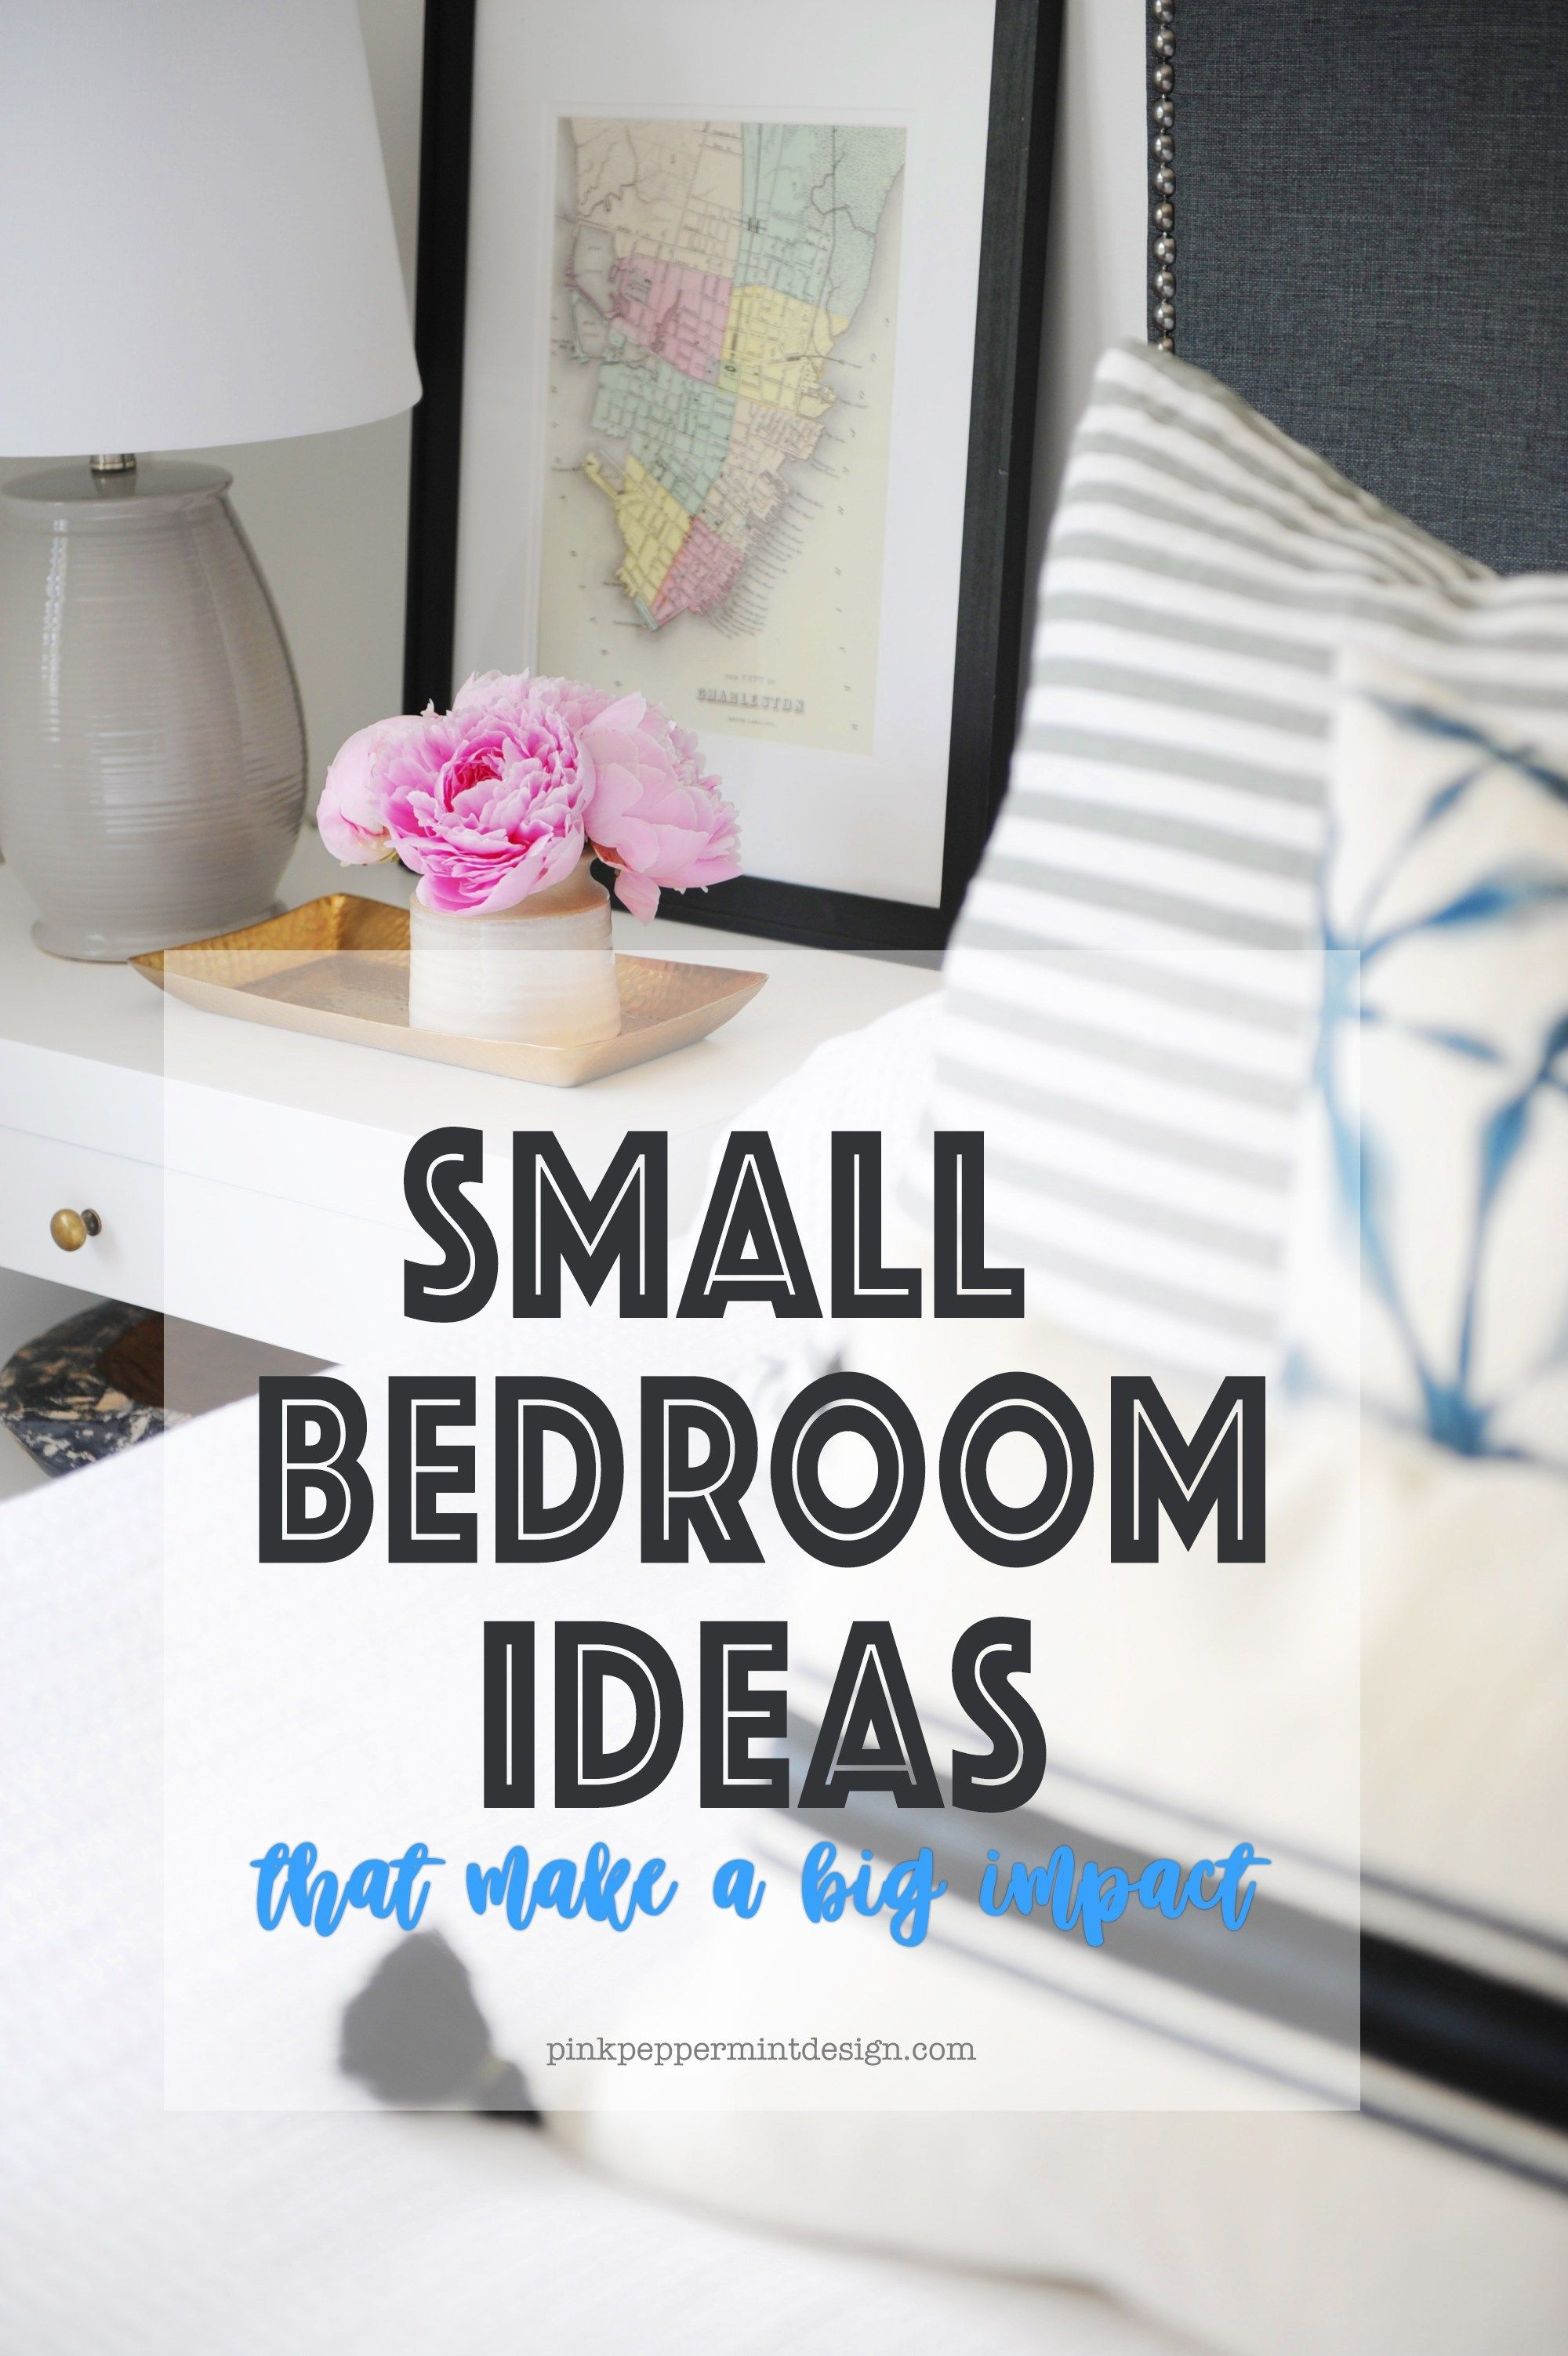 Small Guest Bedroom Ideas That Make A Big Impact With Images